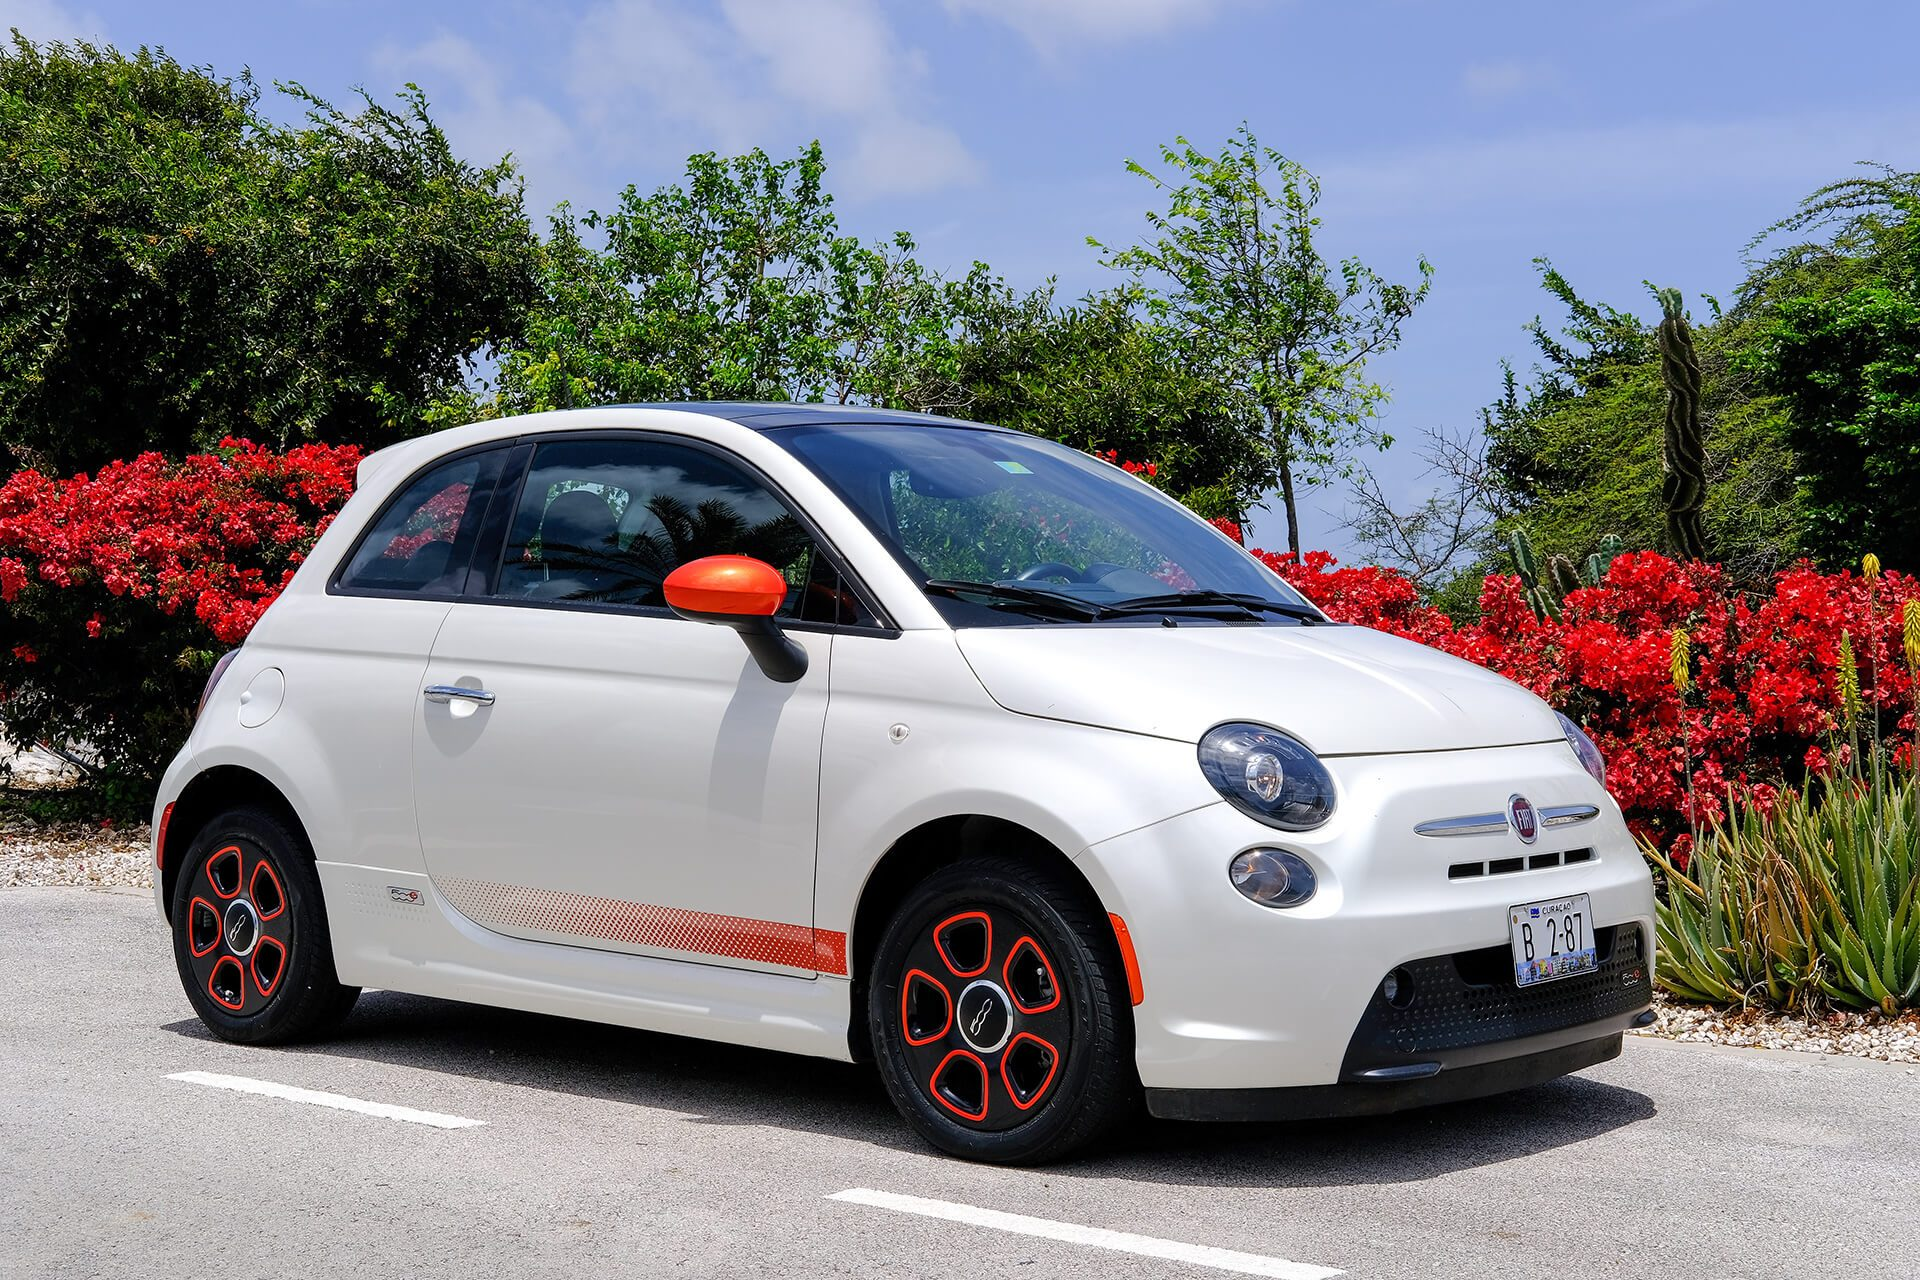 A white fiat, from the Chogogo Curacao car rental service.